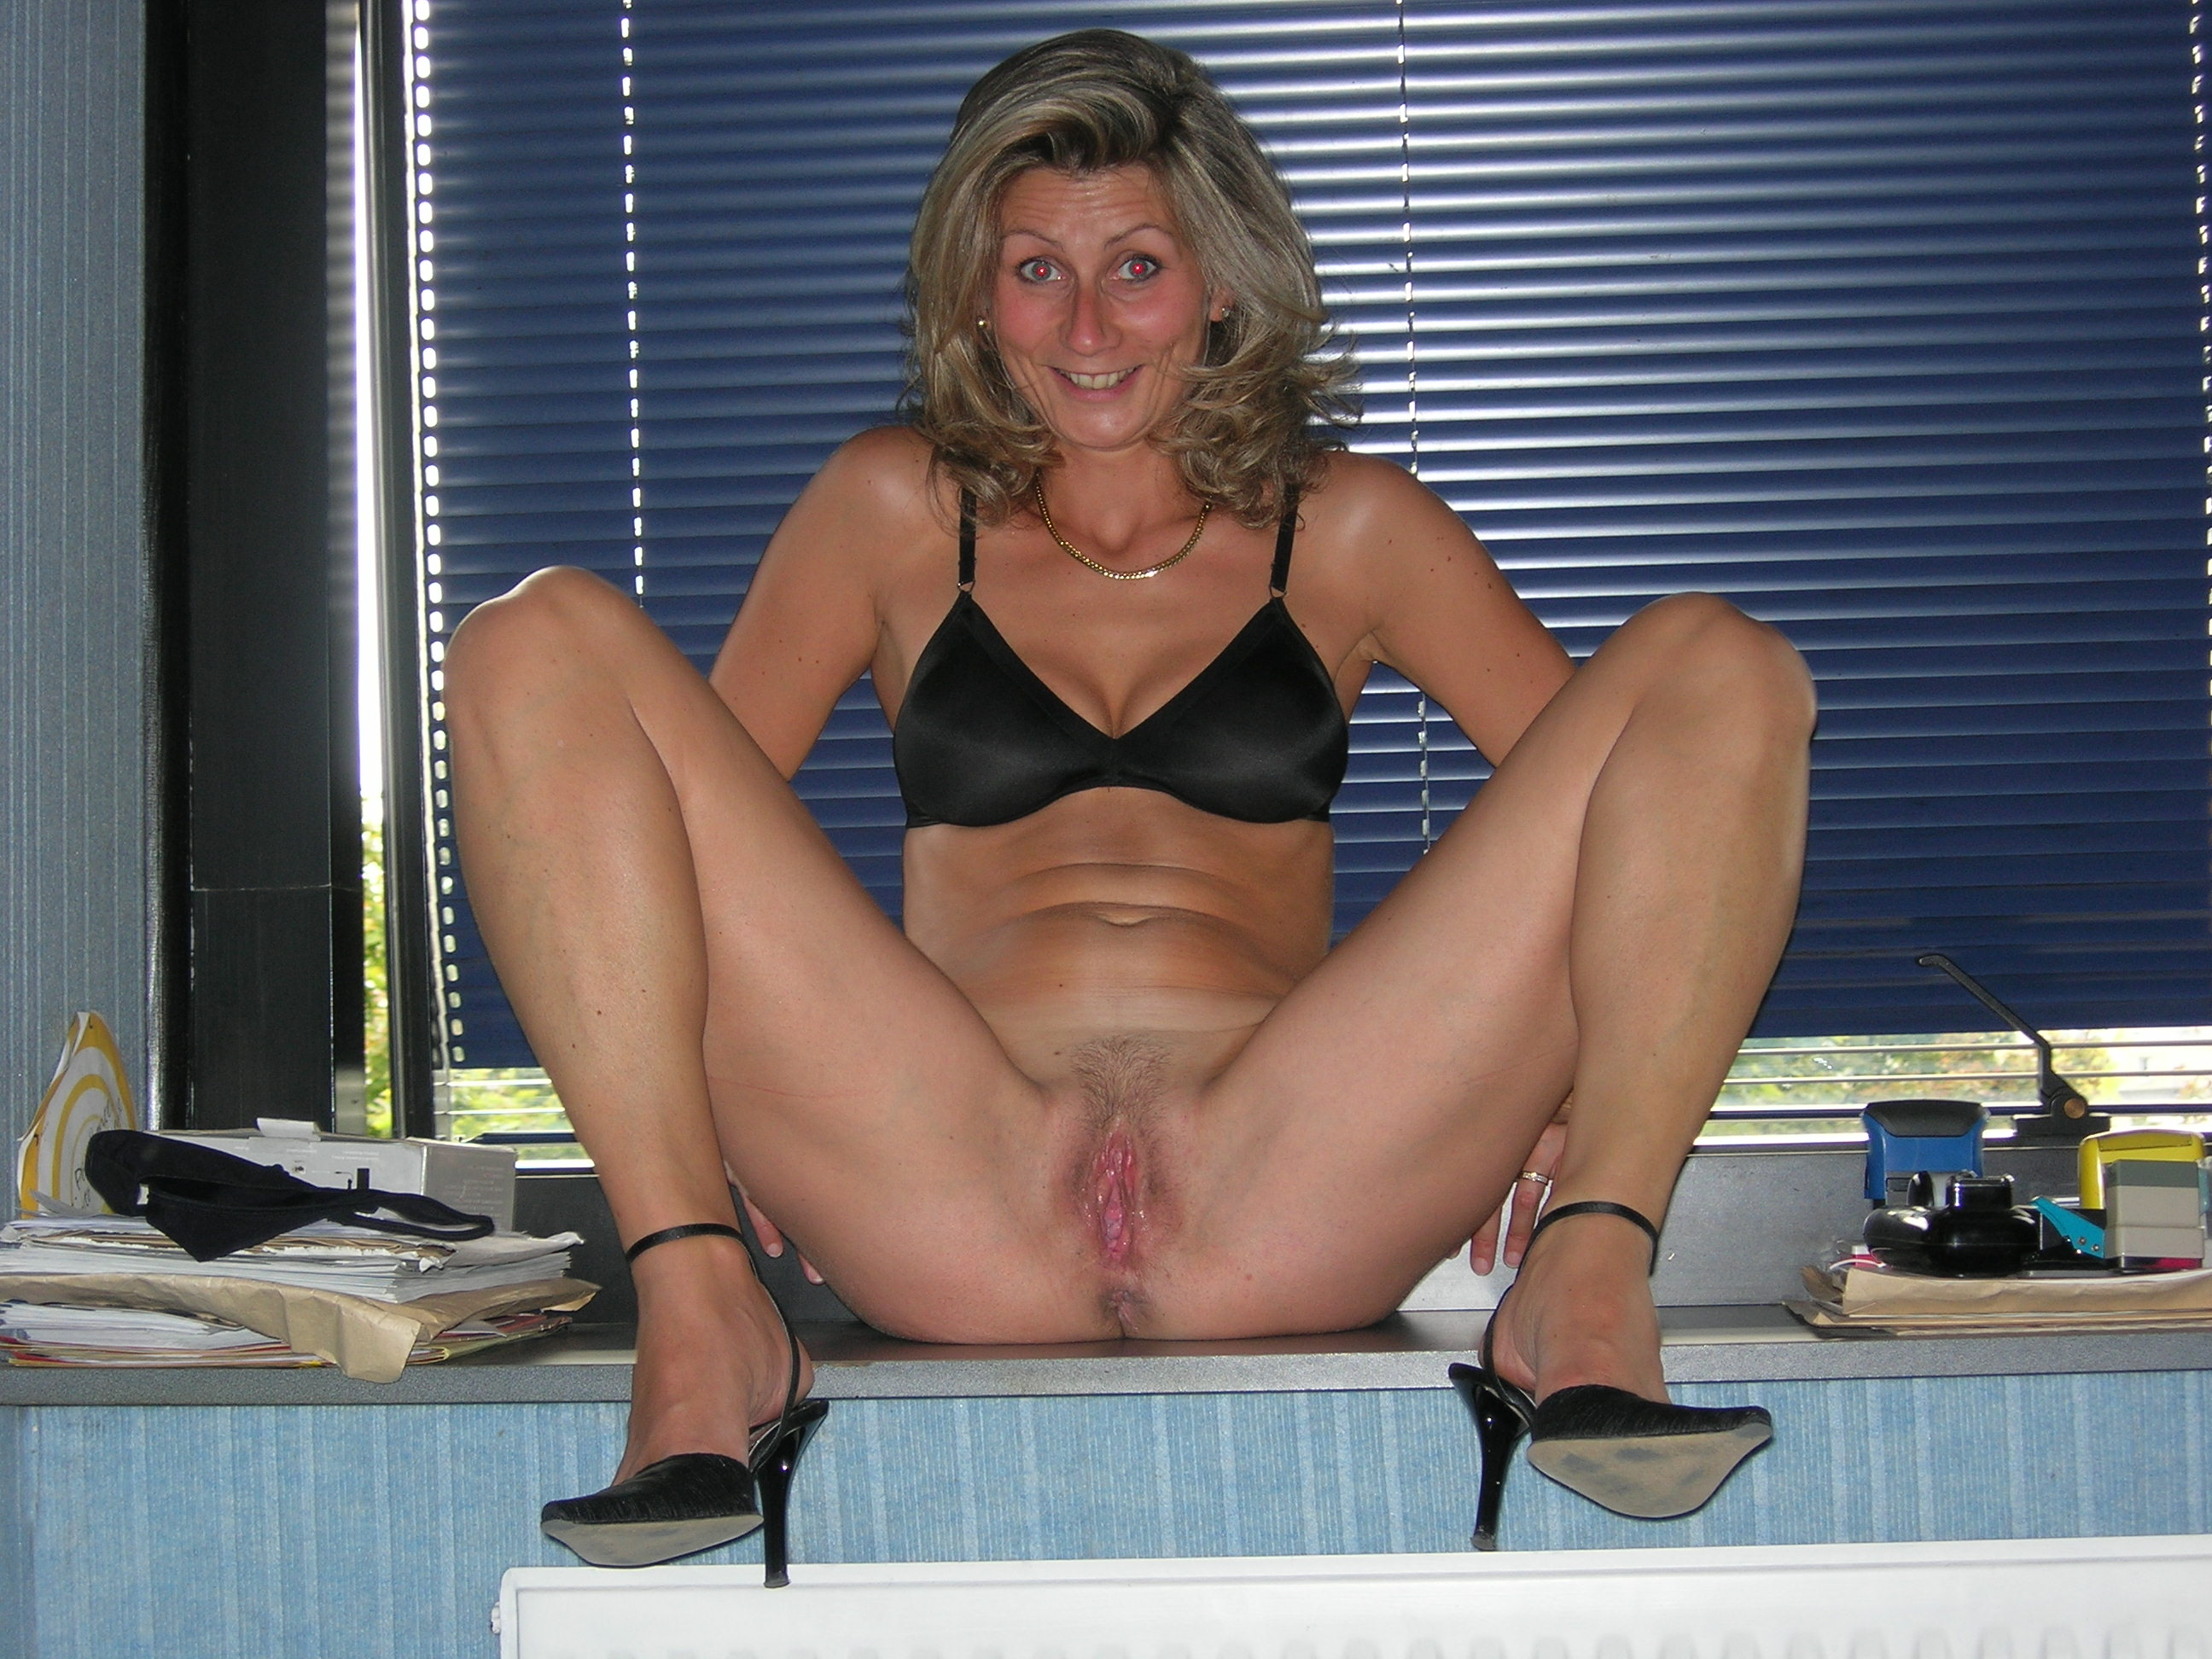 French Wife Sex - French Wife